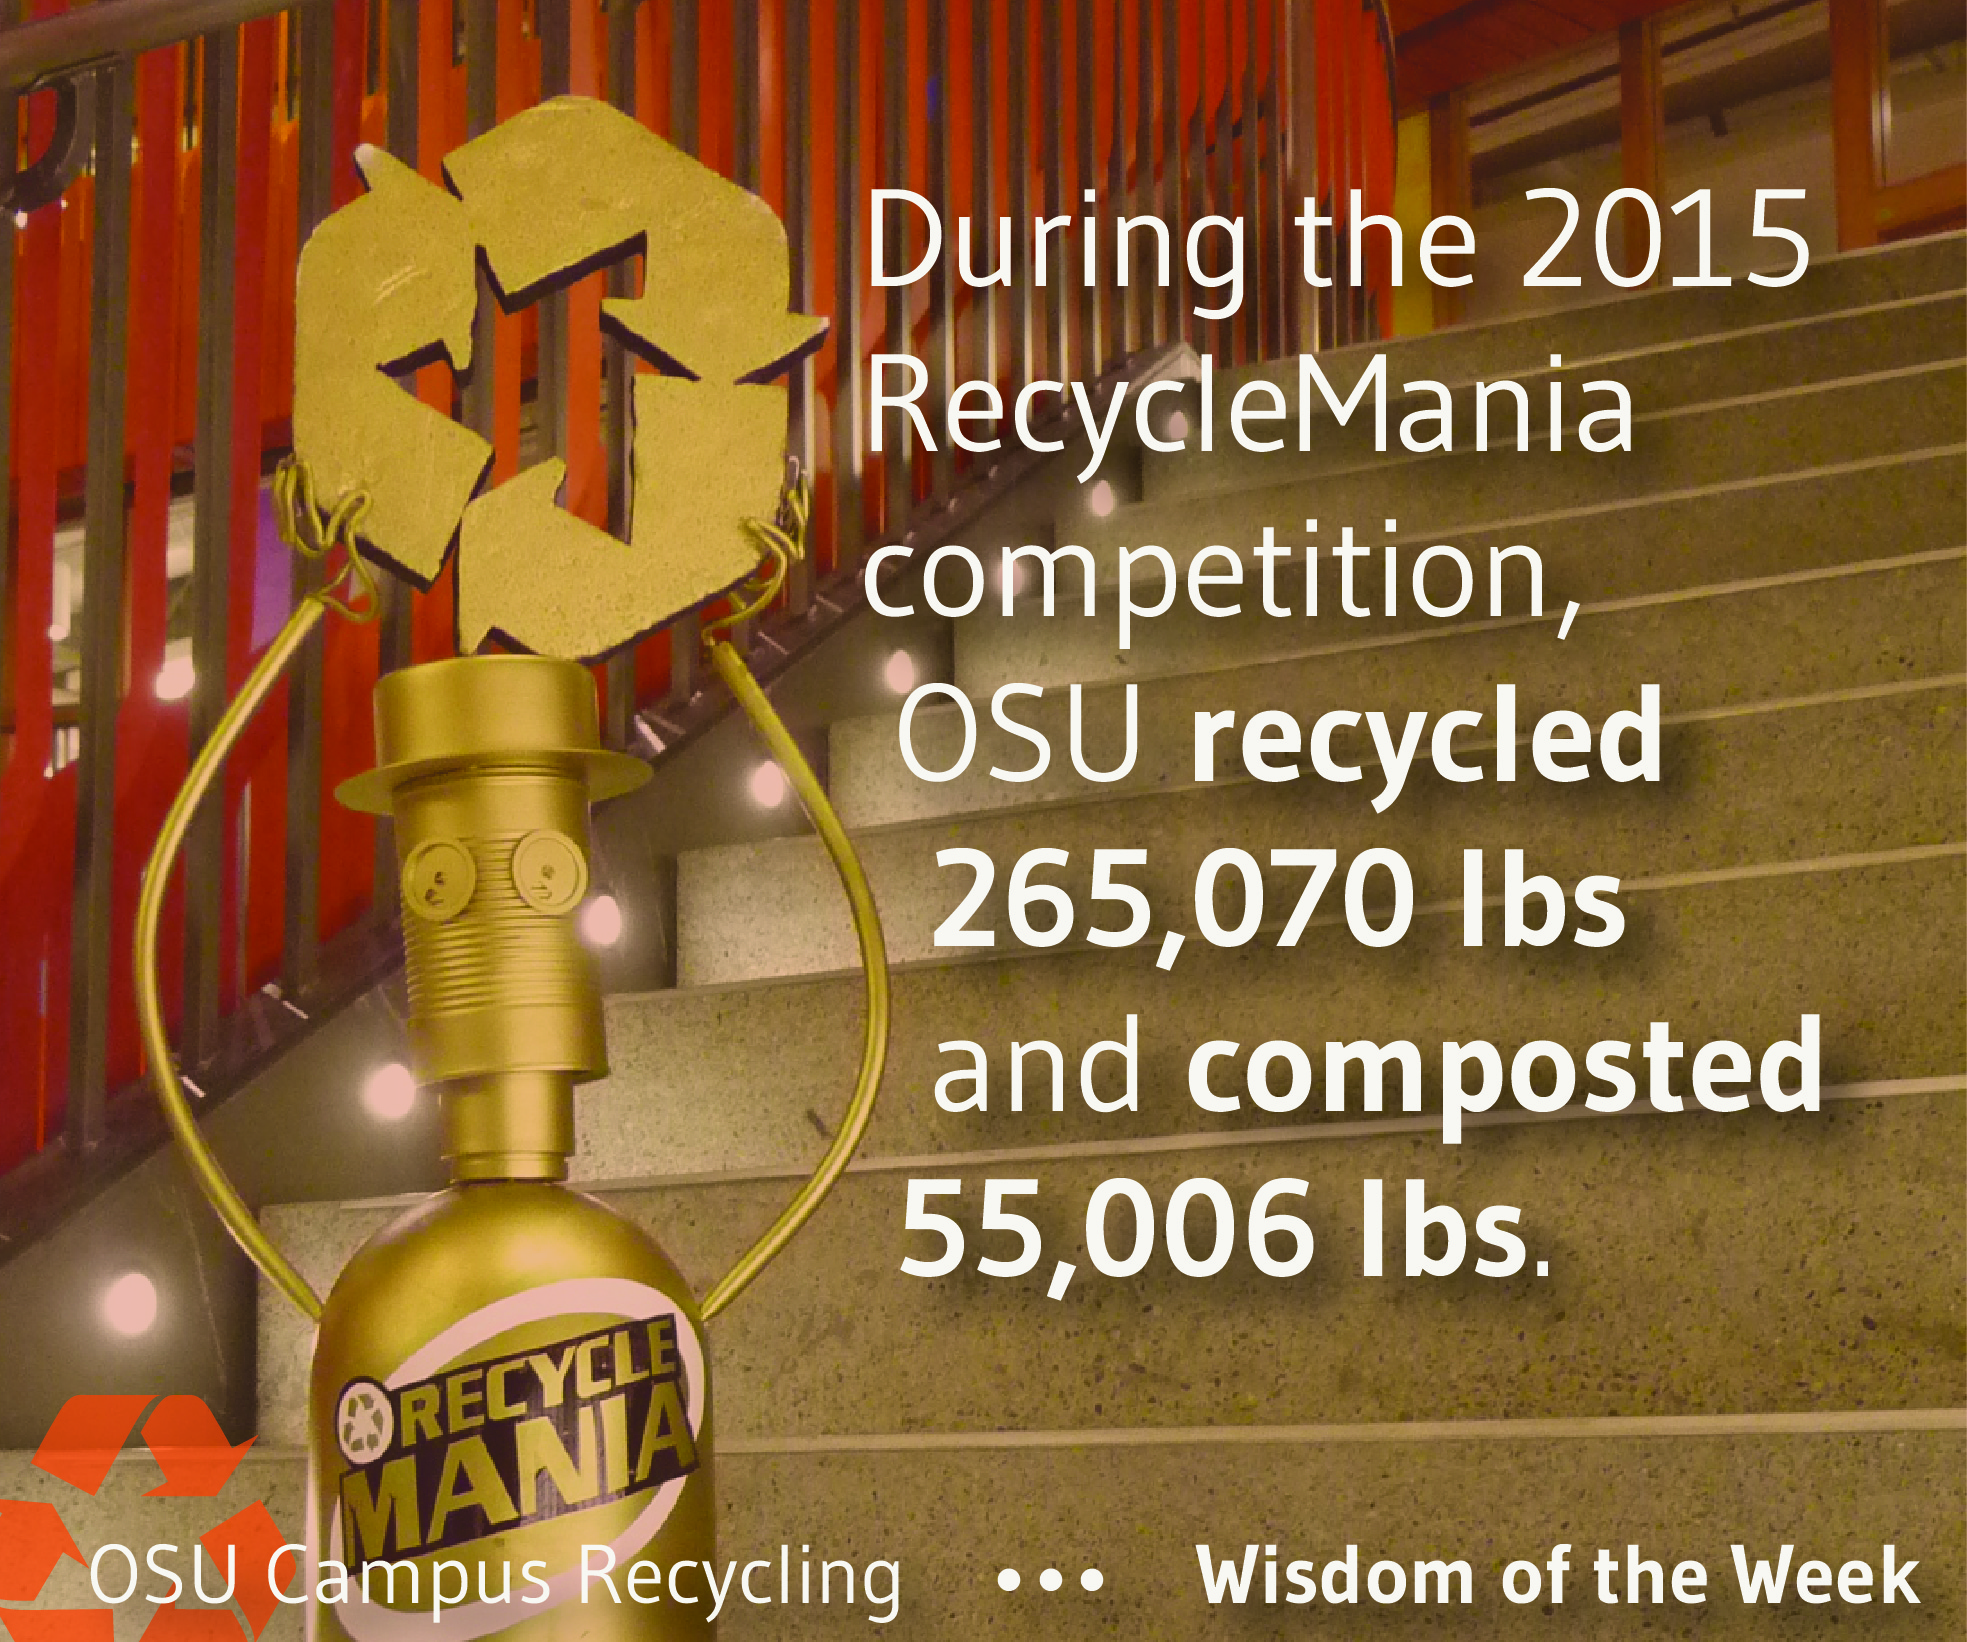 During the 2015 RecycleMania competition, OSU recycled 265,070 lbs and composted 55,006 lbs.